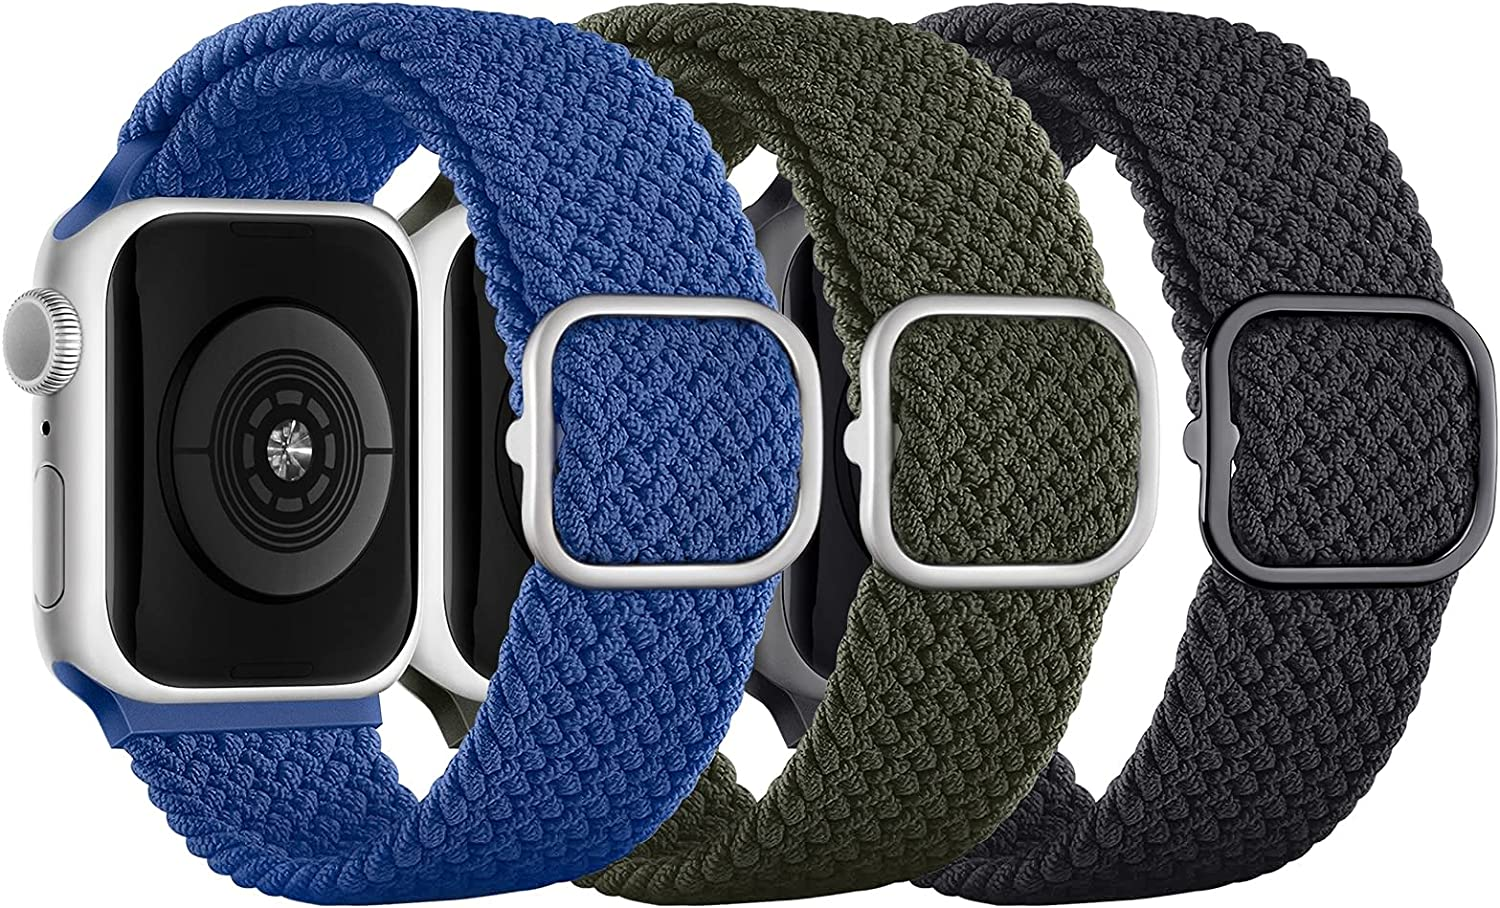 CCnutri Braided Solo Loop Band Compatible with Apple Watch Bands 38mm 41mm 40mm 42mm 44mm 45mm,Stretch Braided band with Buckle for iWatch SE Series 7/6/5/4/3/2/1